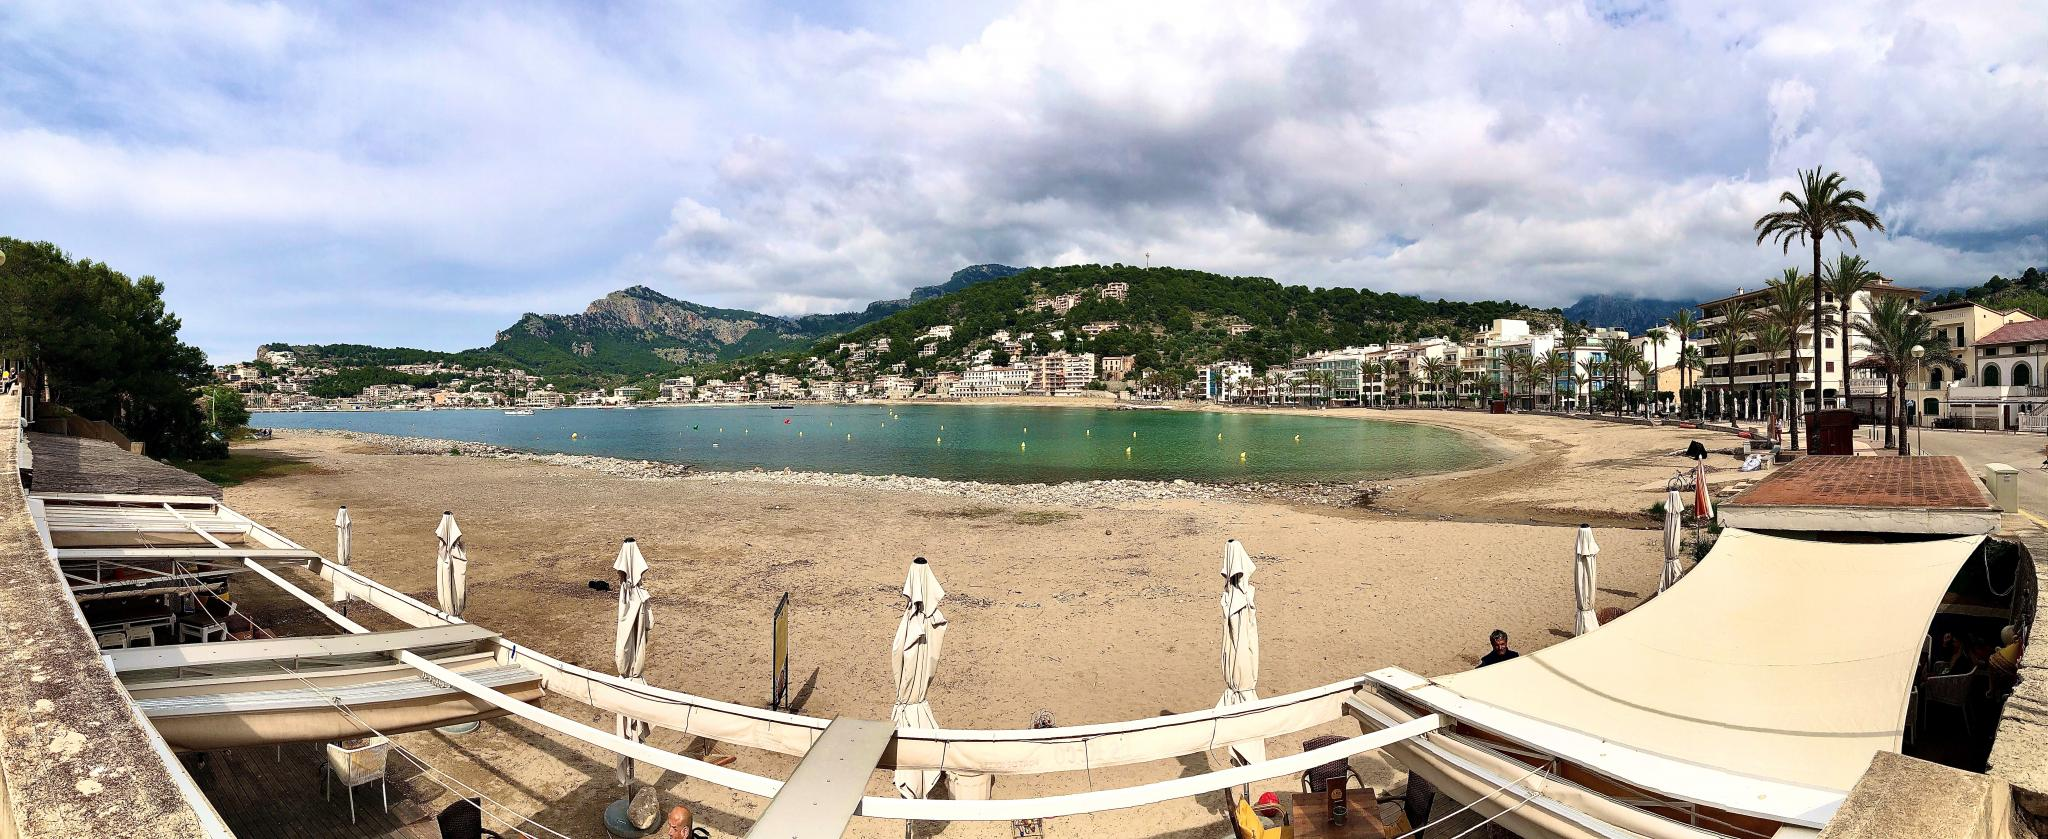 Repic beach in the Port of Soller.